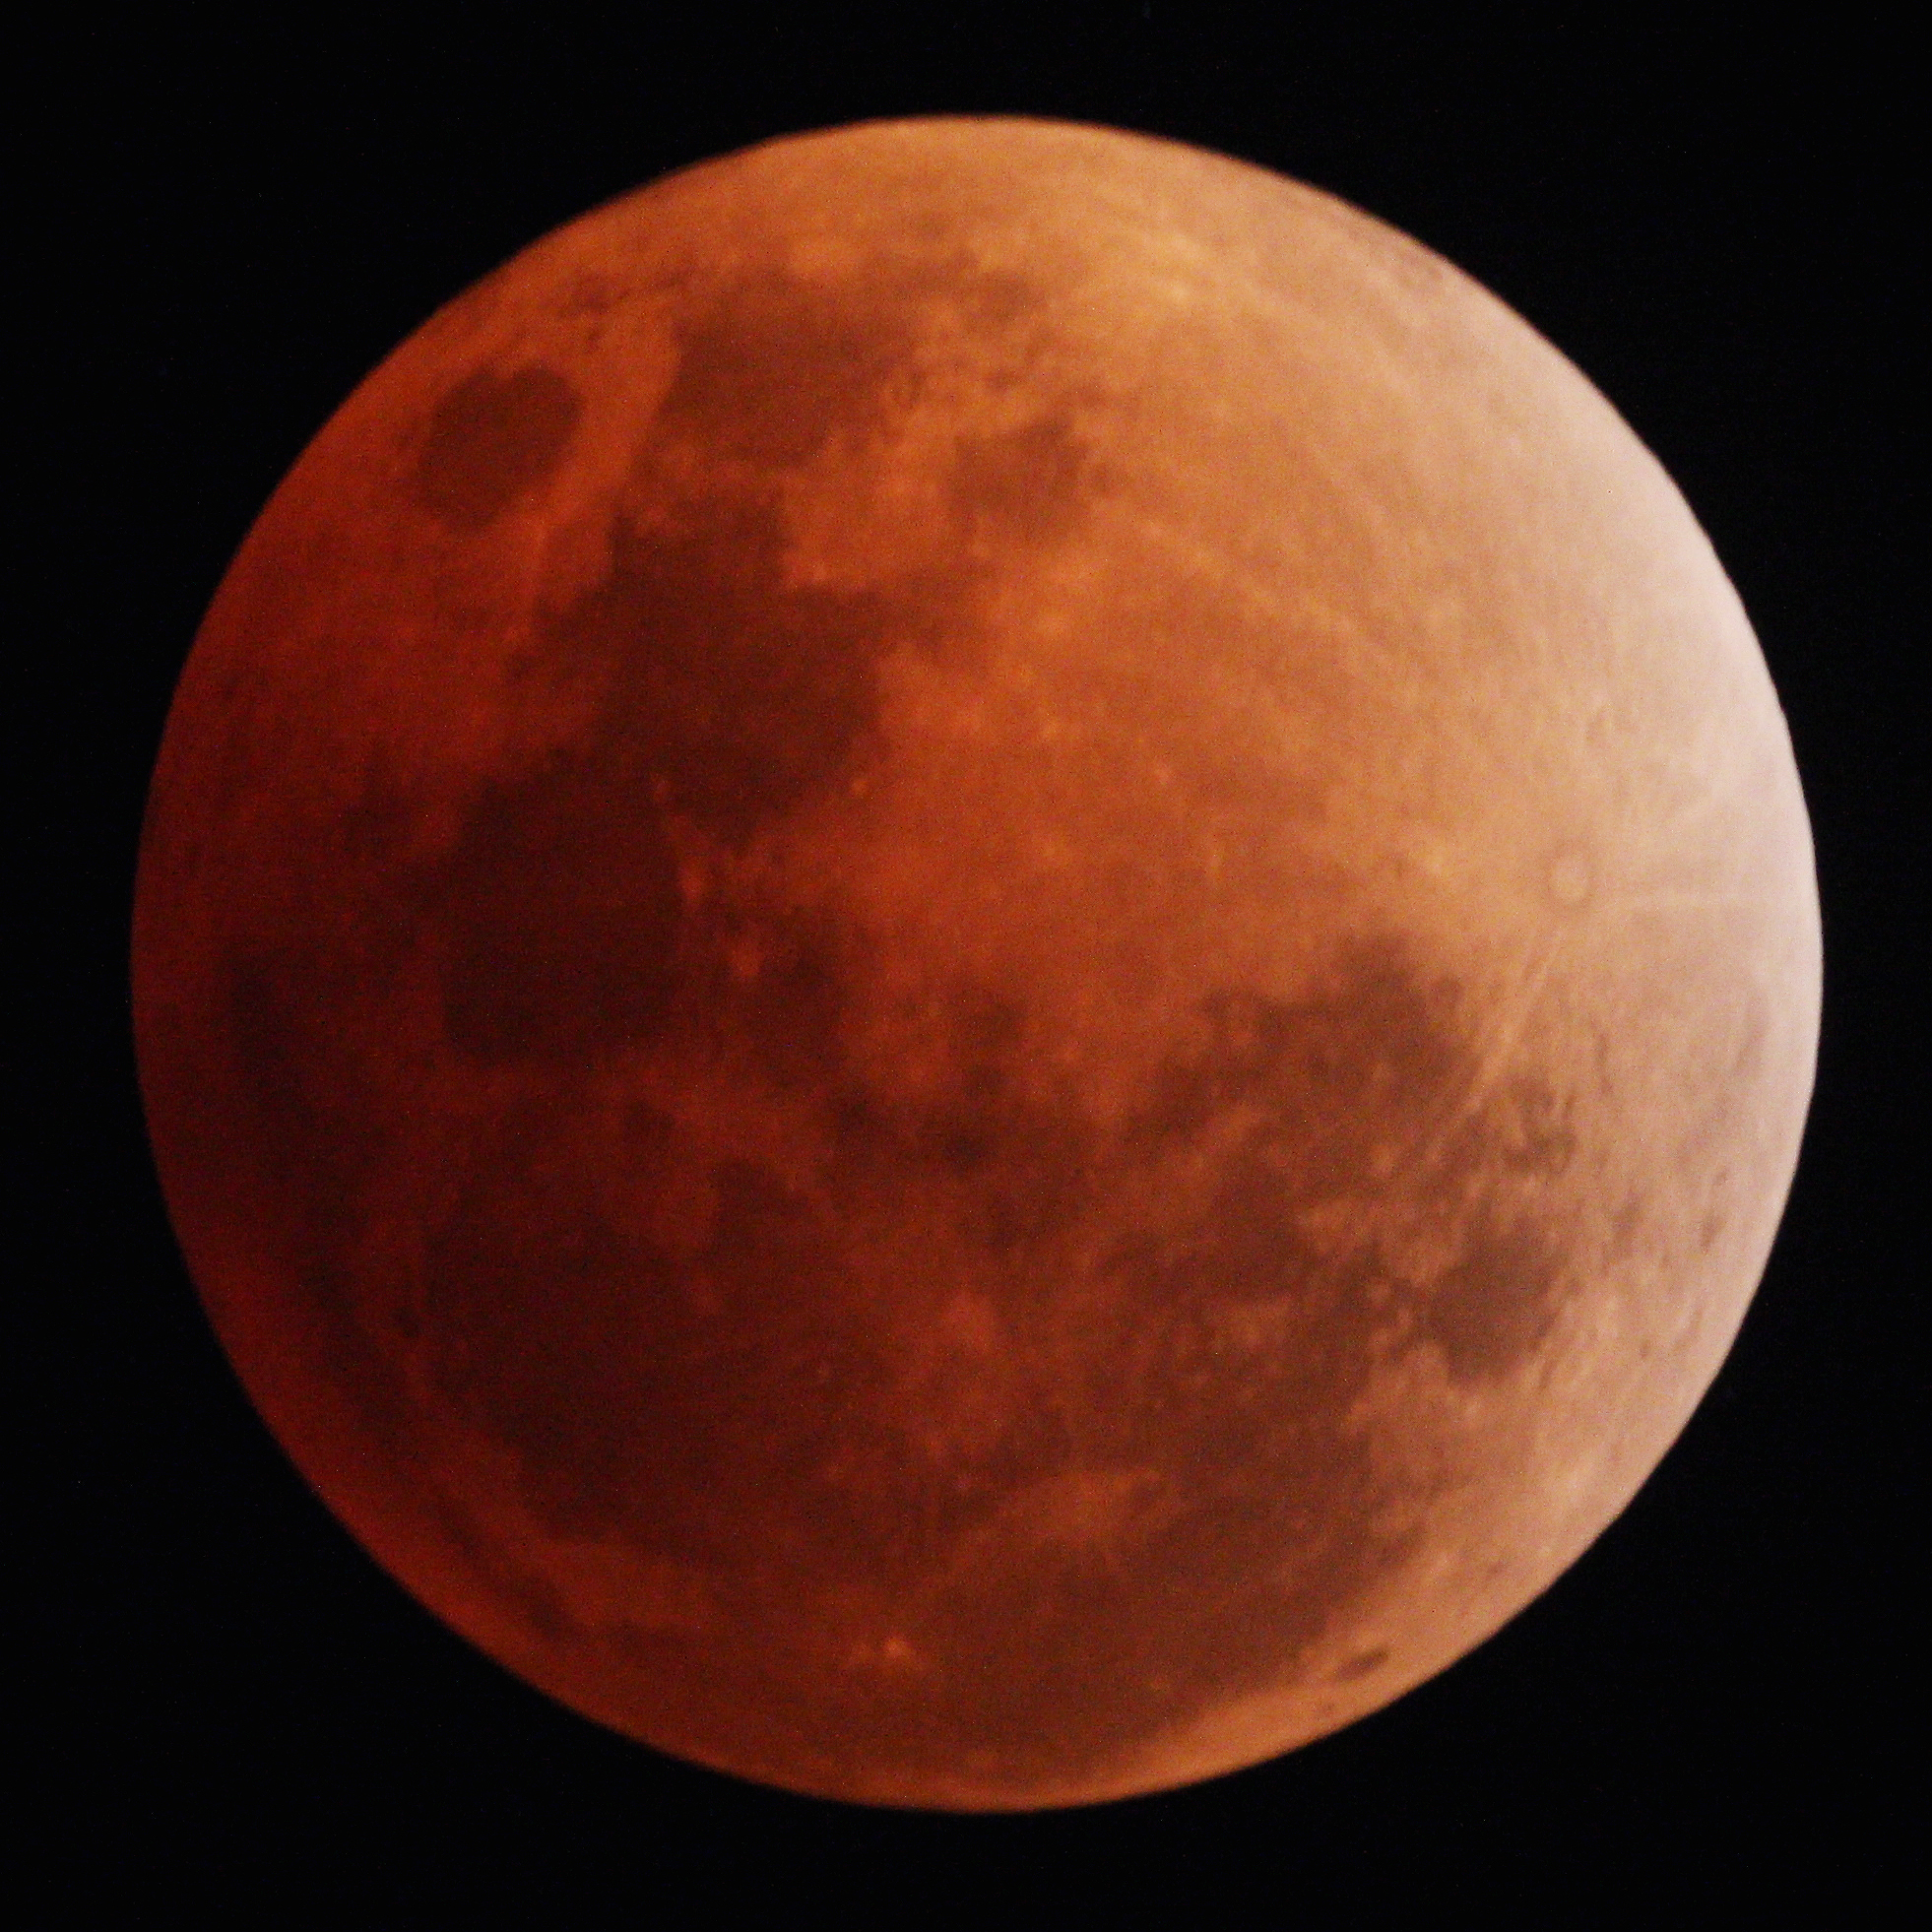 Lunar Eclipse on July 28, 2018